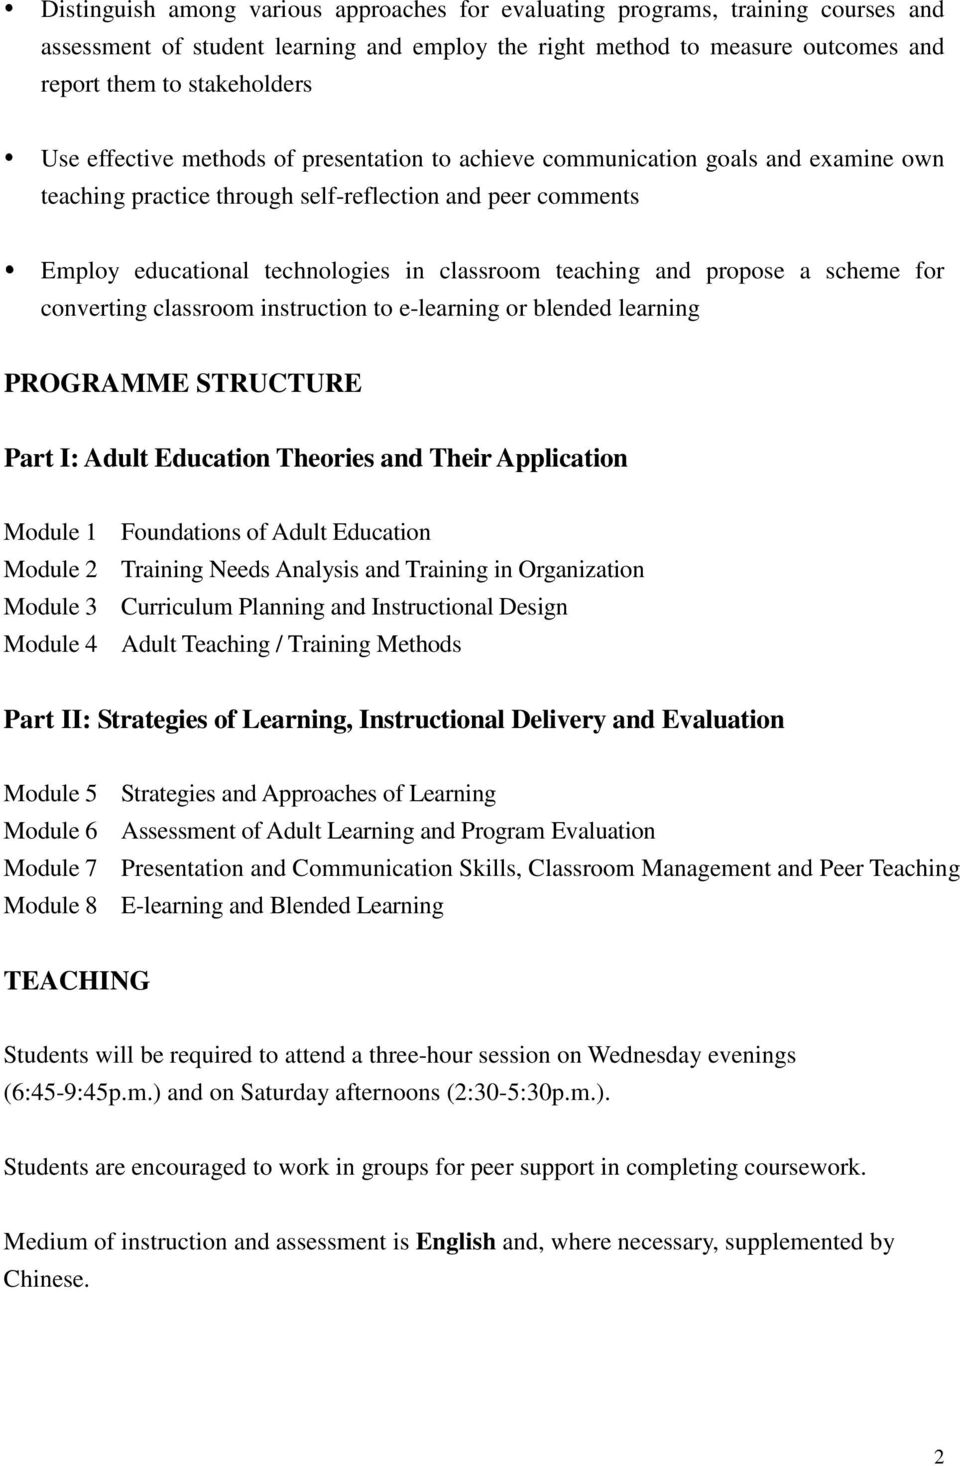 Graduate Diploma in Adult Education and Training - PDF